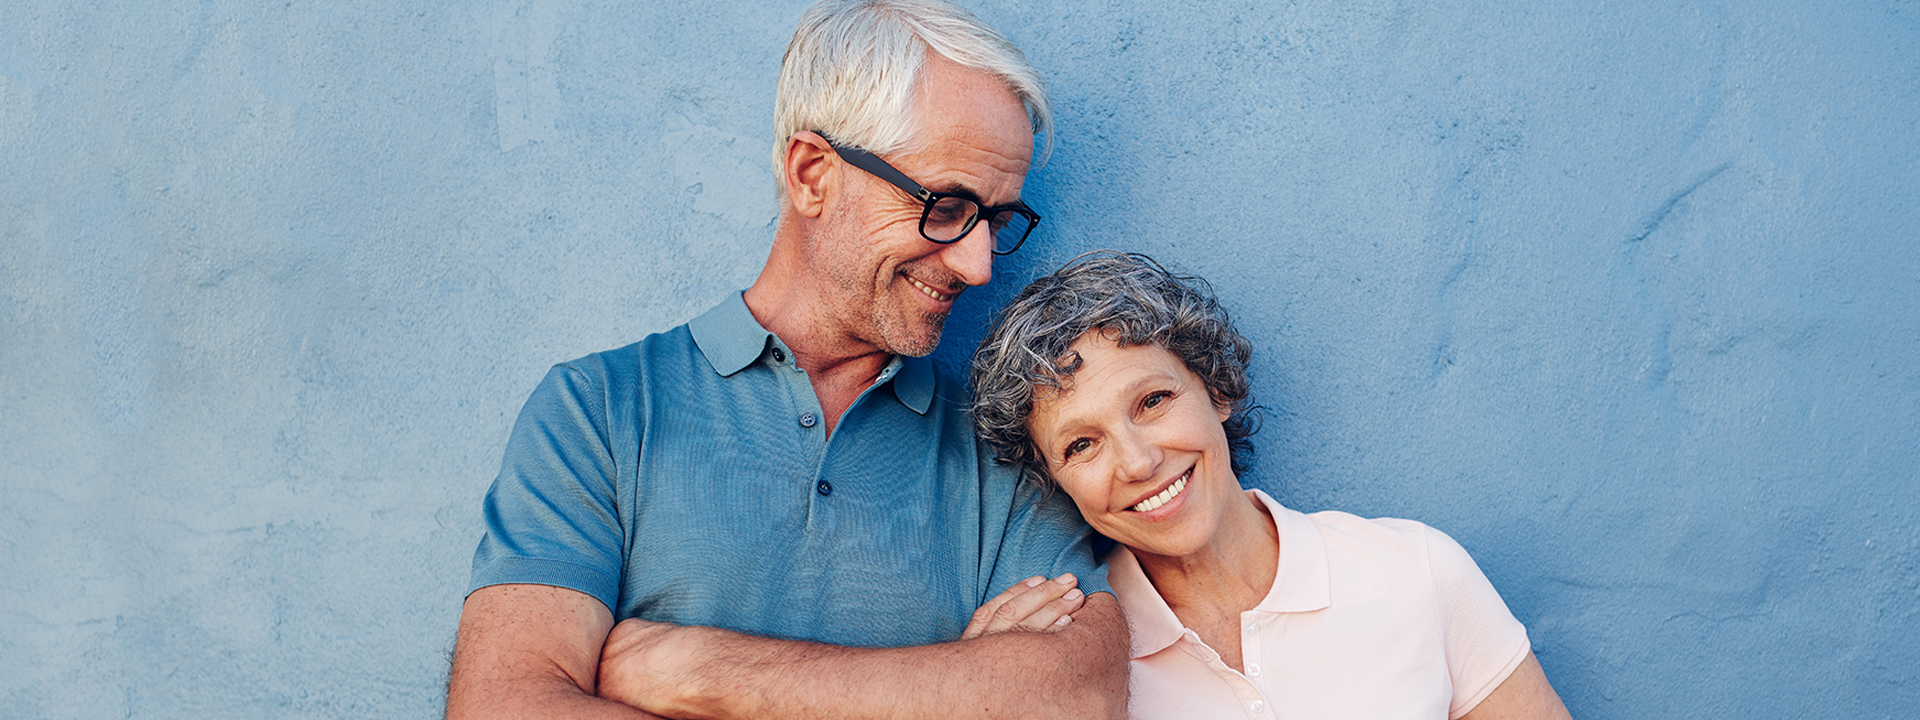 dental implants and dentist in Kelowna and West Kelowna